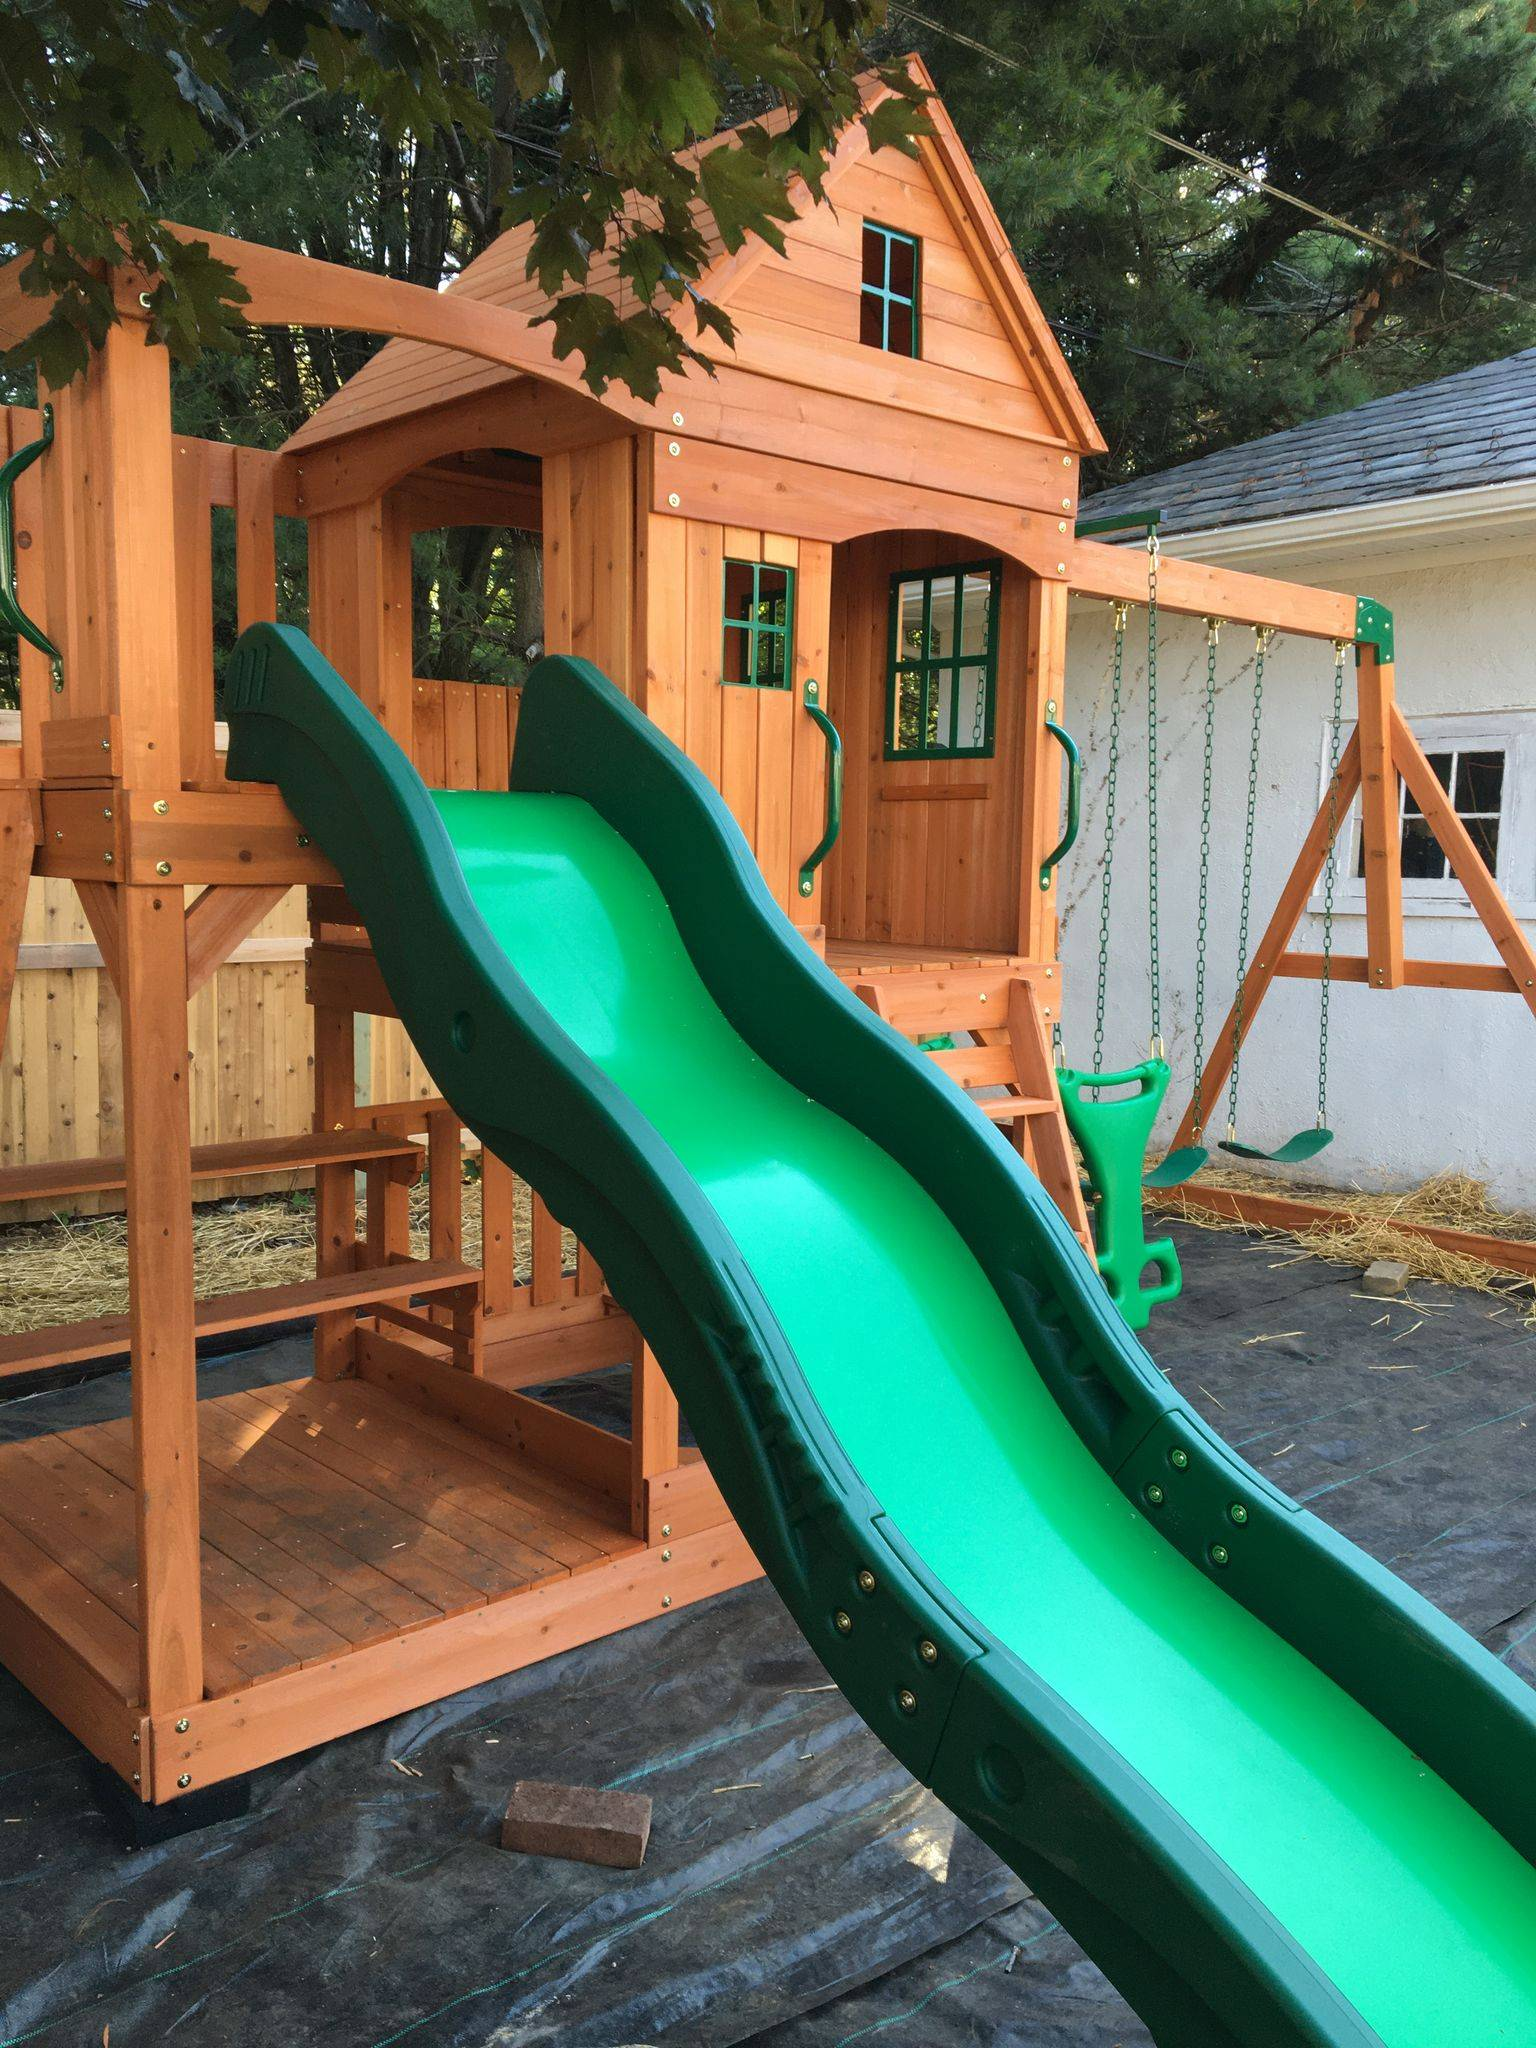 backyard discovery Pacific View swing set assembly in leesburg Virginia